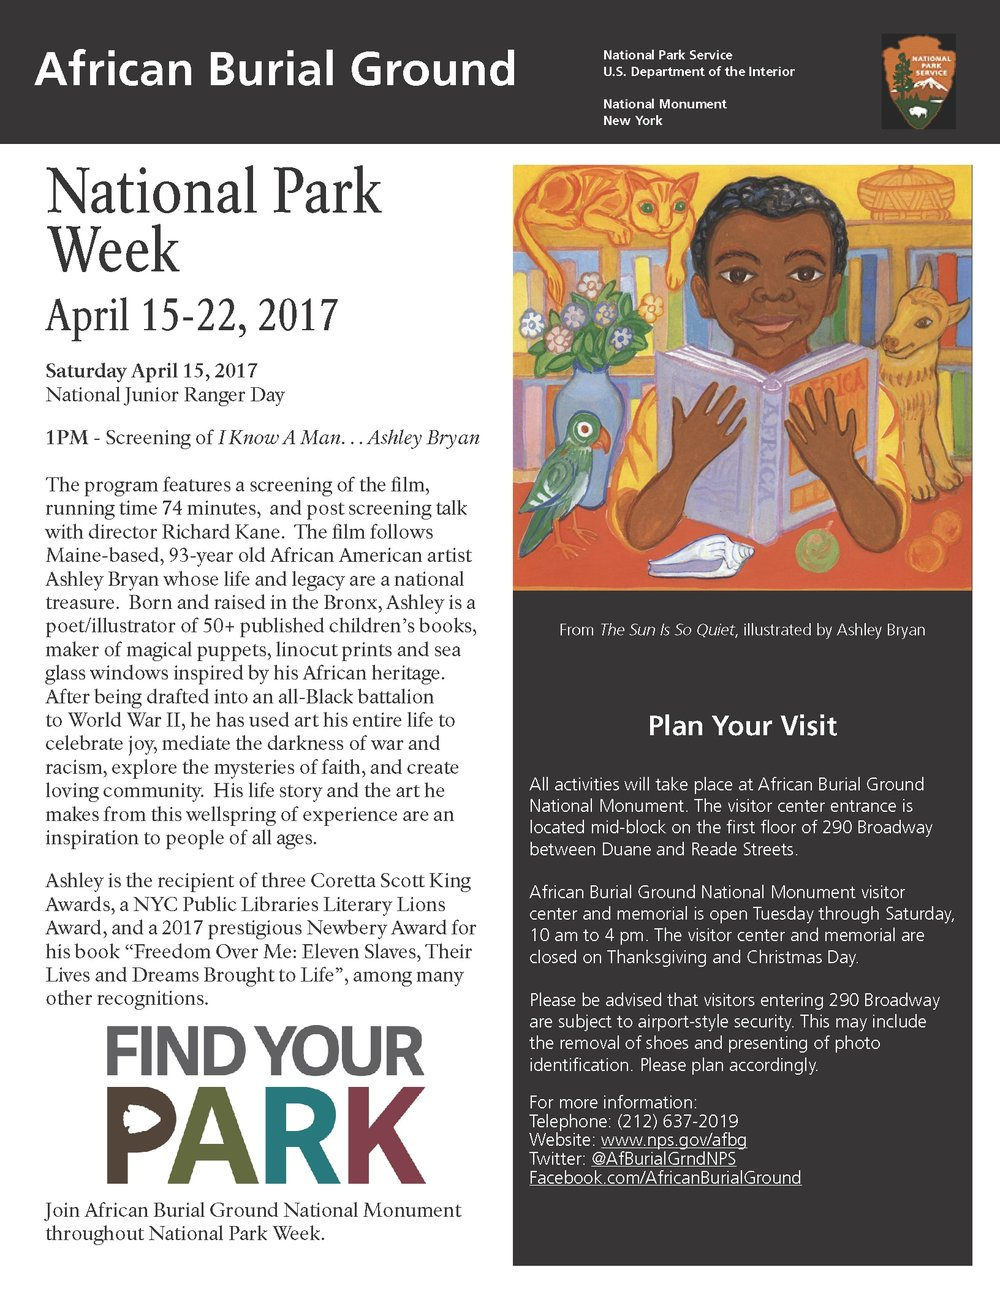 African Burial Ground, National Park Service Screening, New York City.